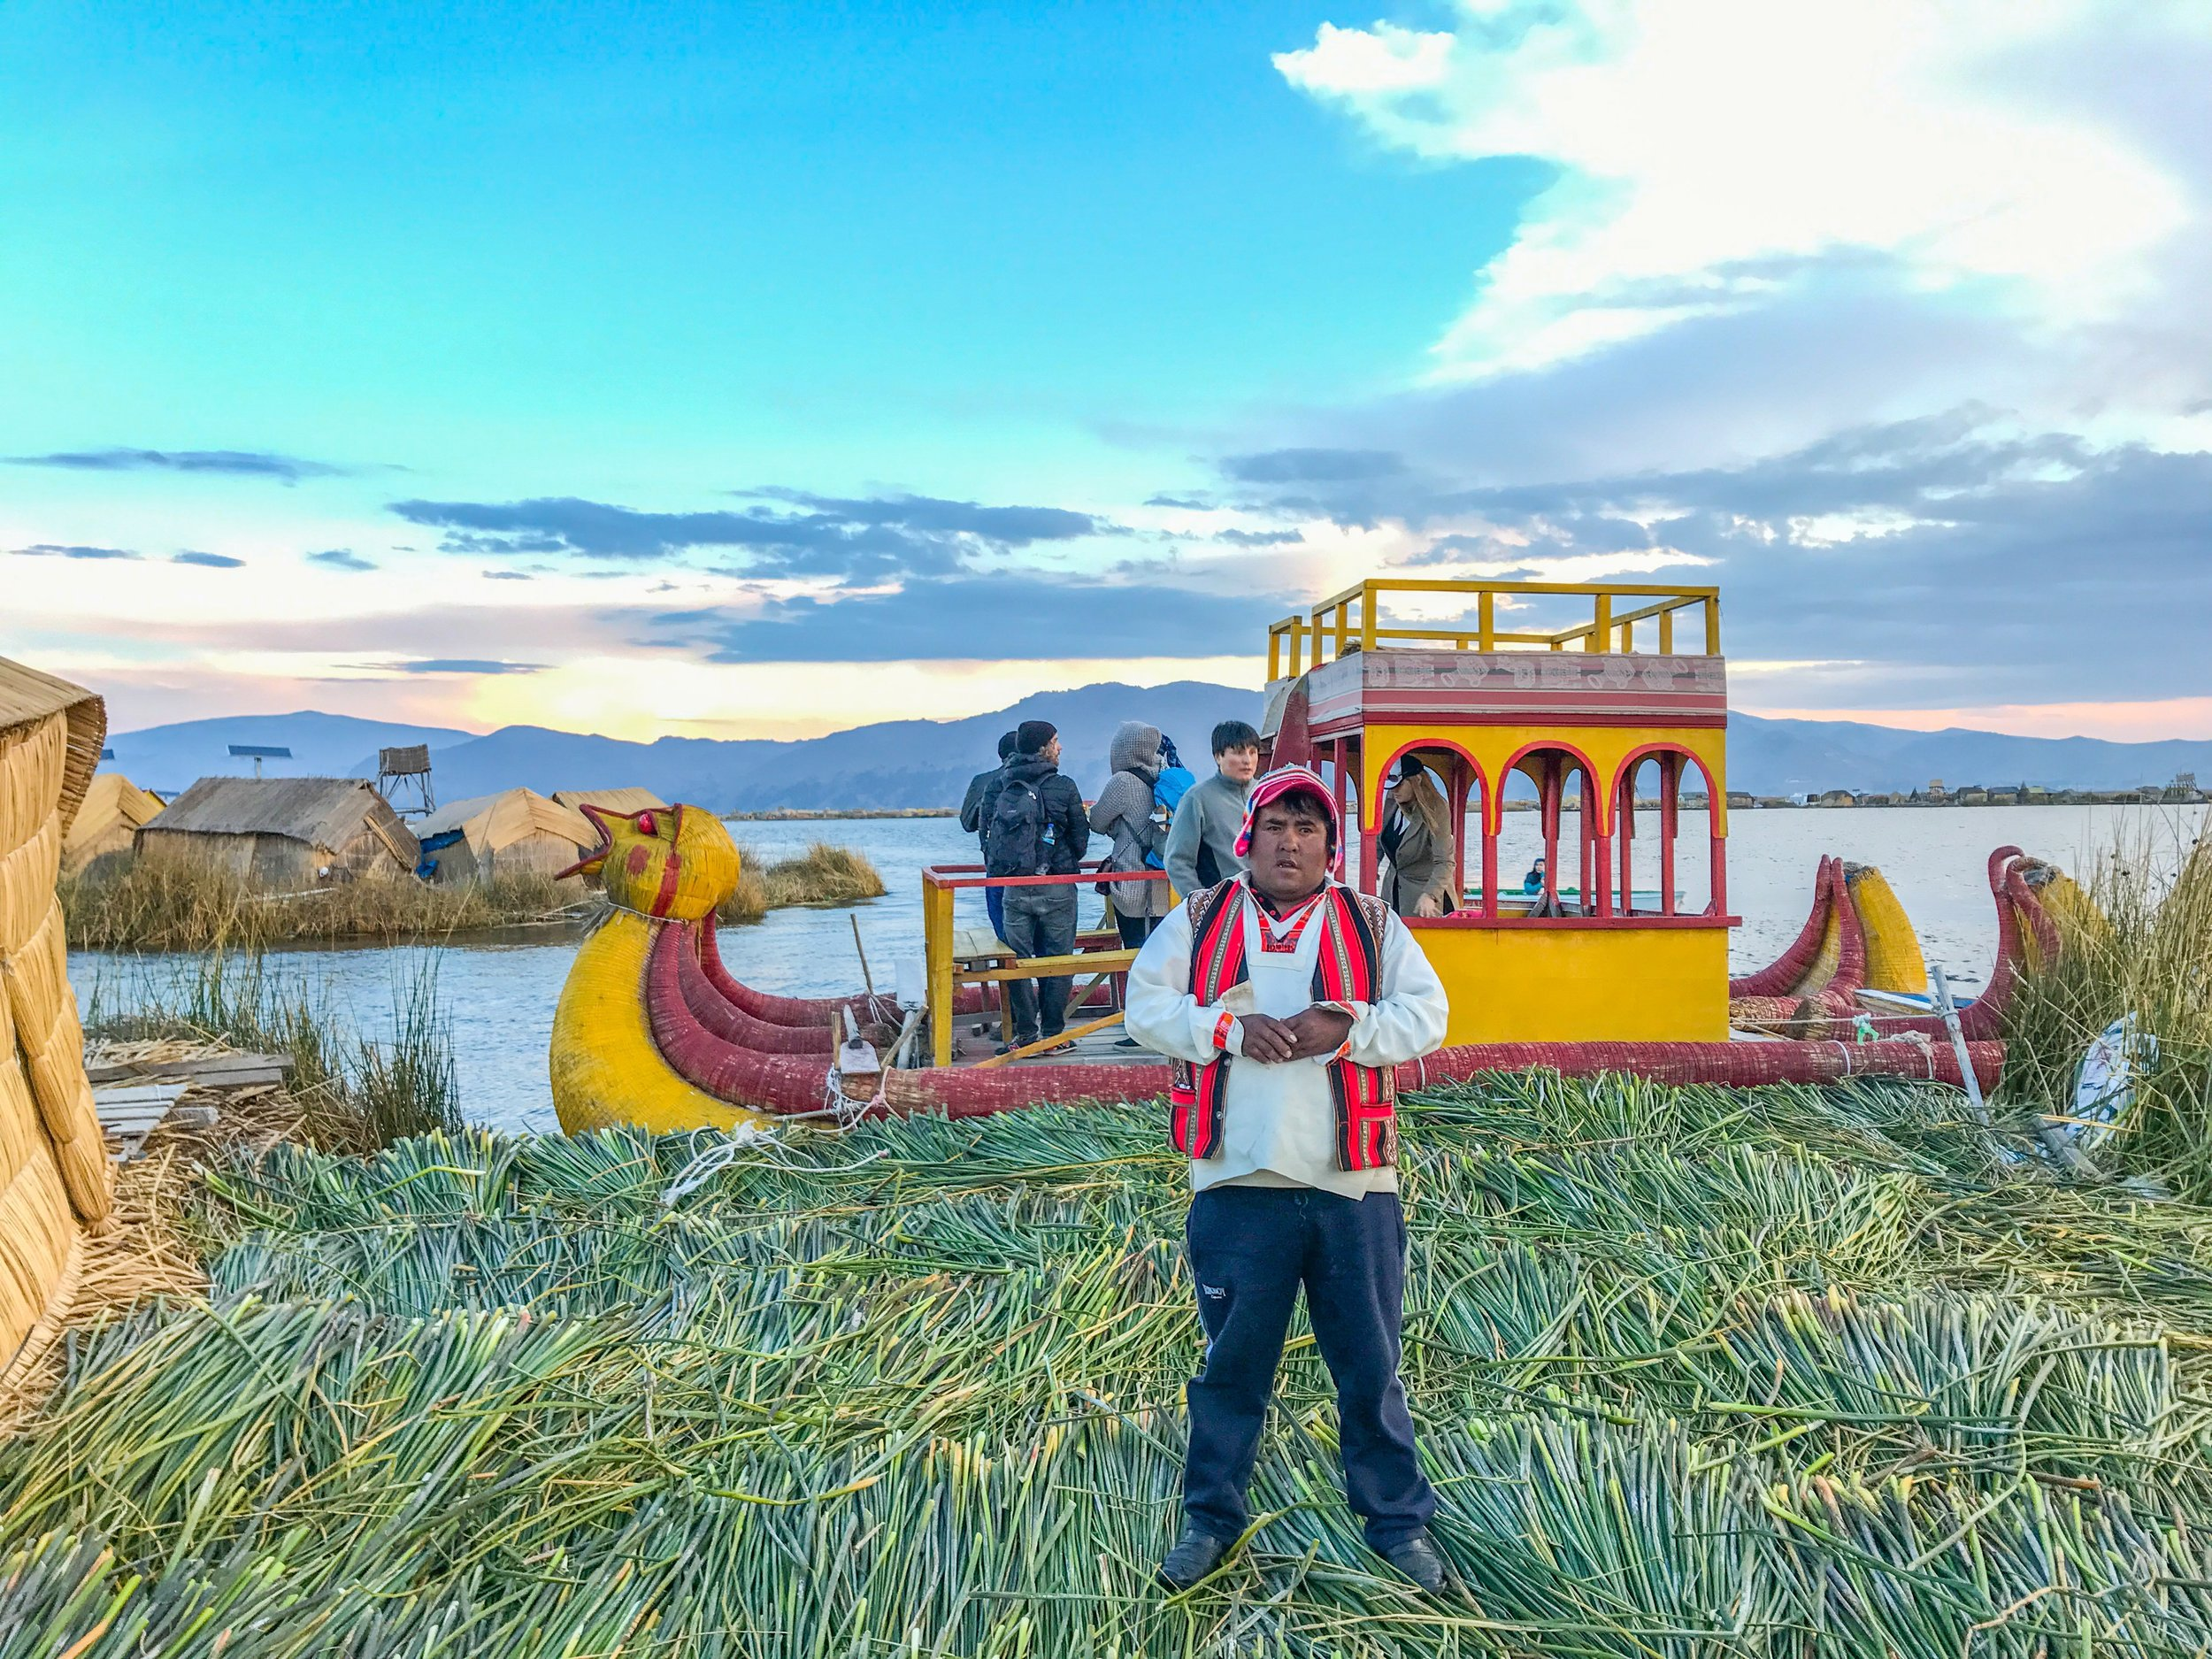 The Uros island chief posing in front of the Mercedes Benz boat in Puno